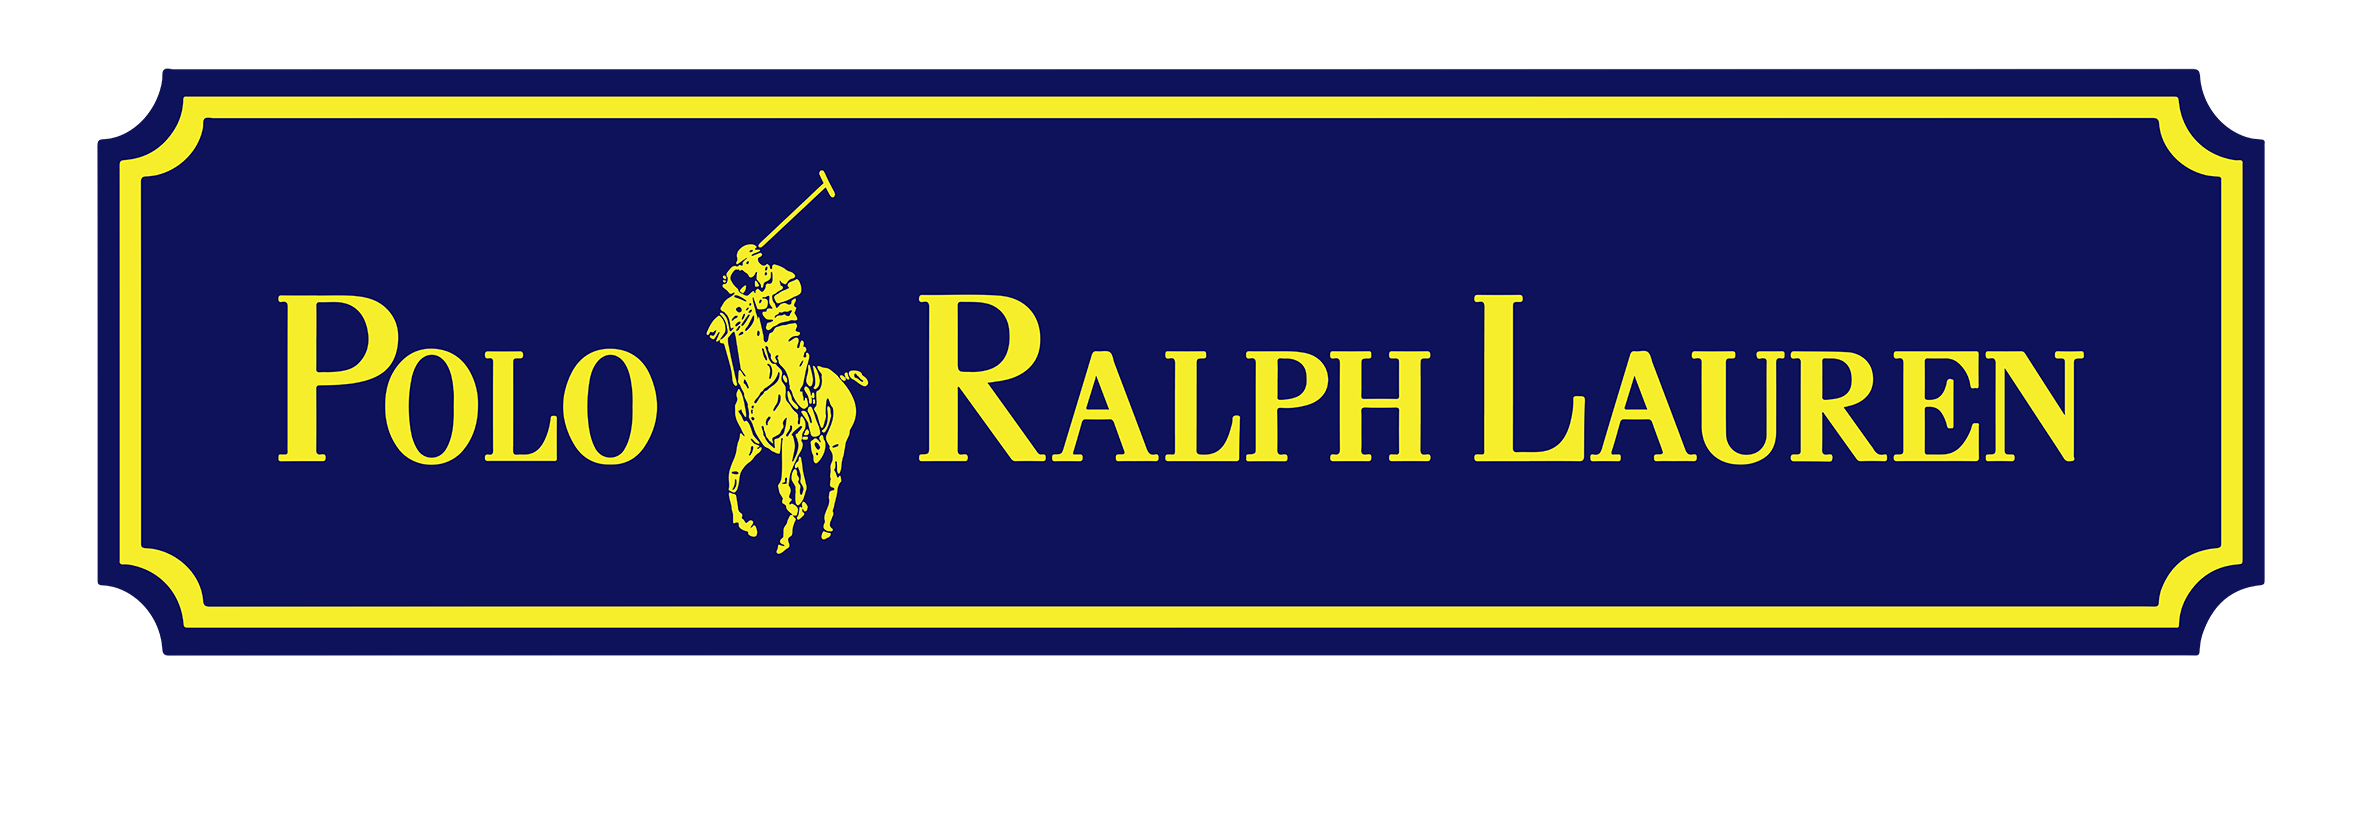 Polo Ralph Lauren Indonesia